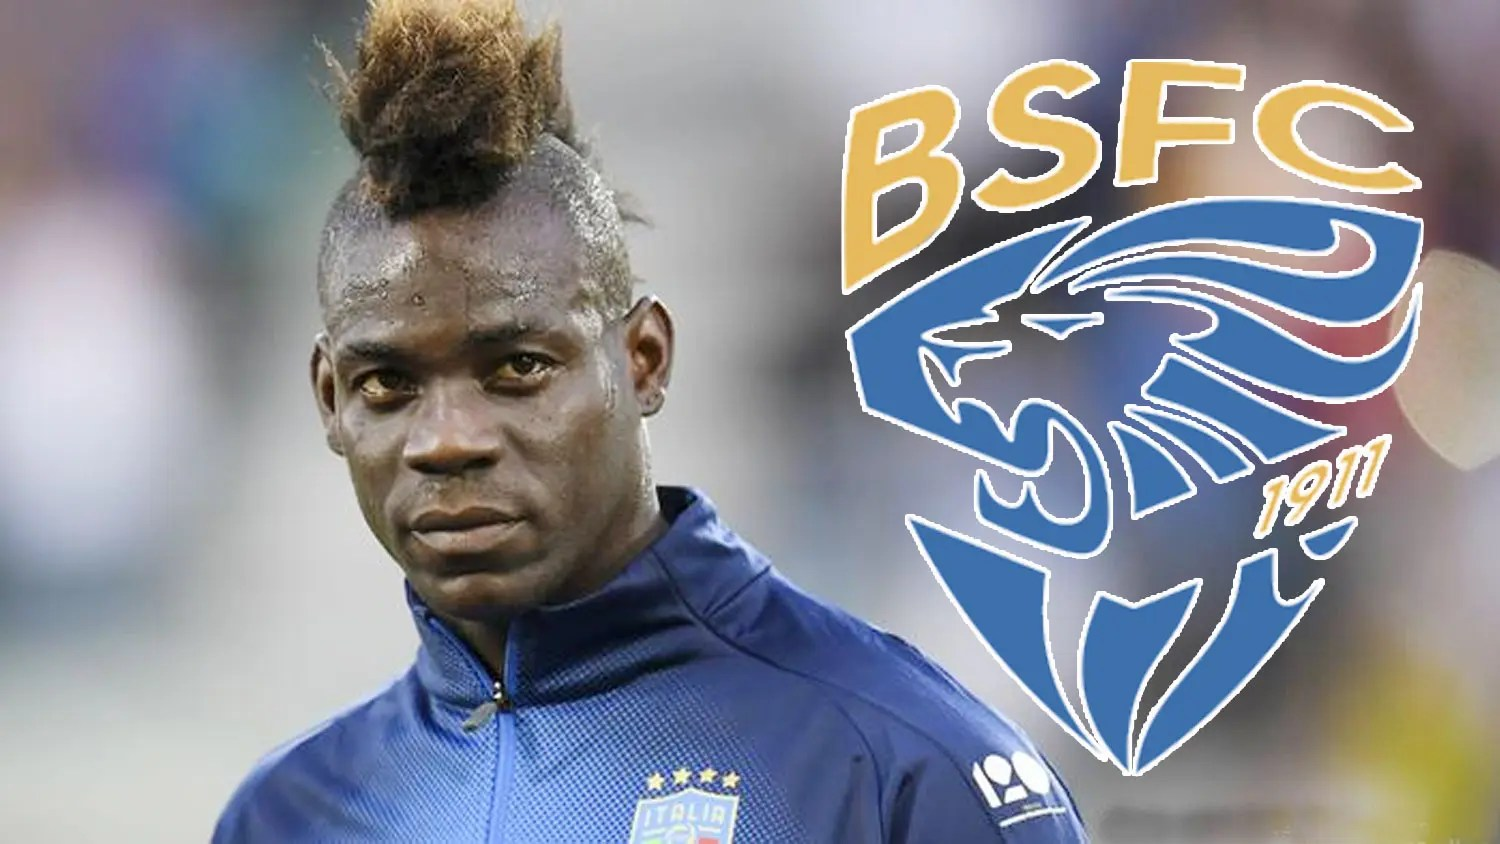 Mario Balotelli signs for Brescia